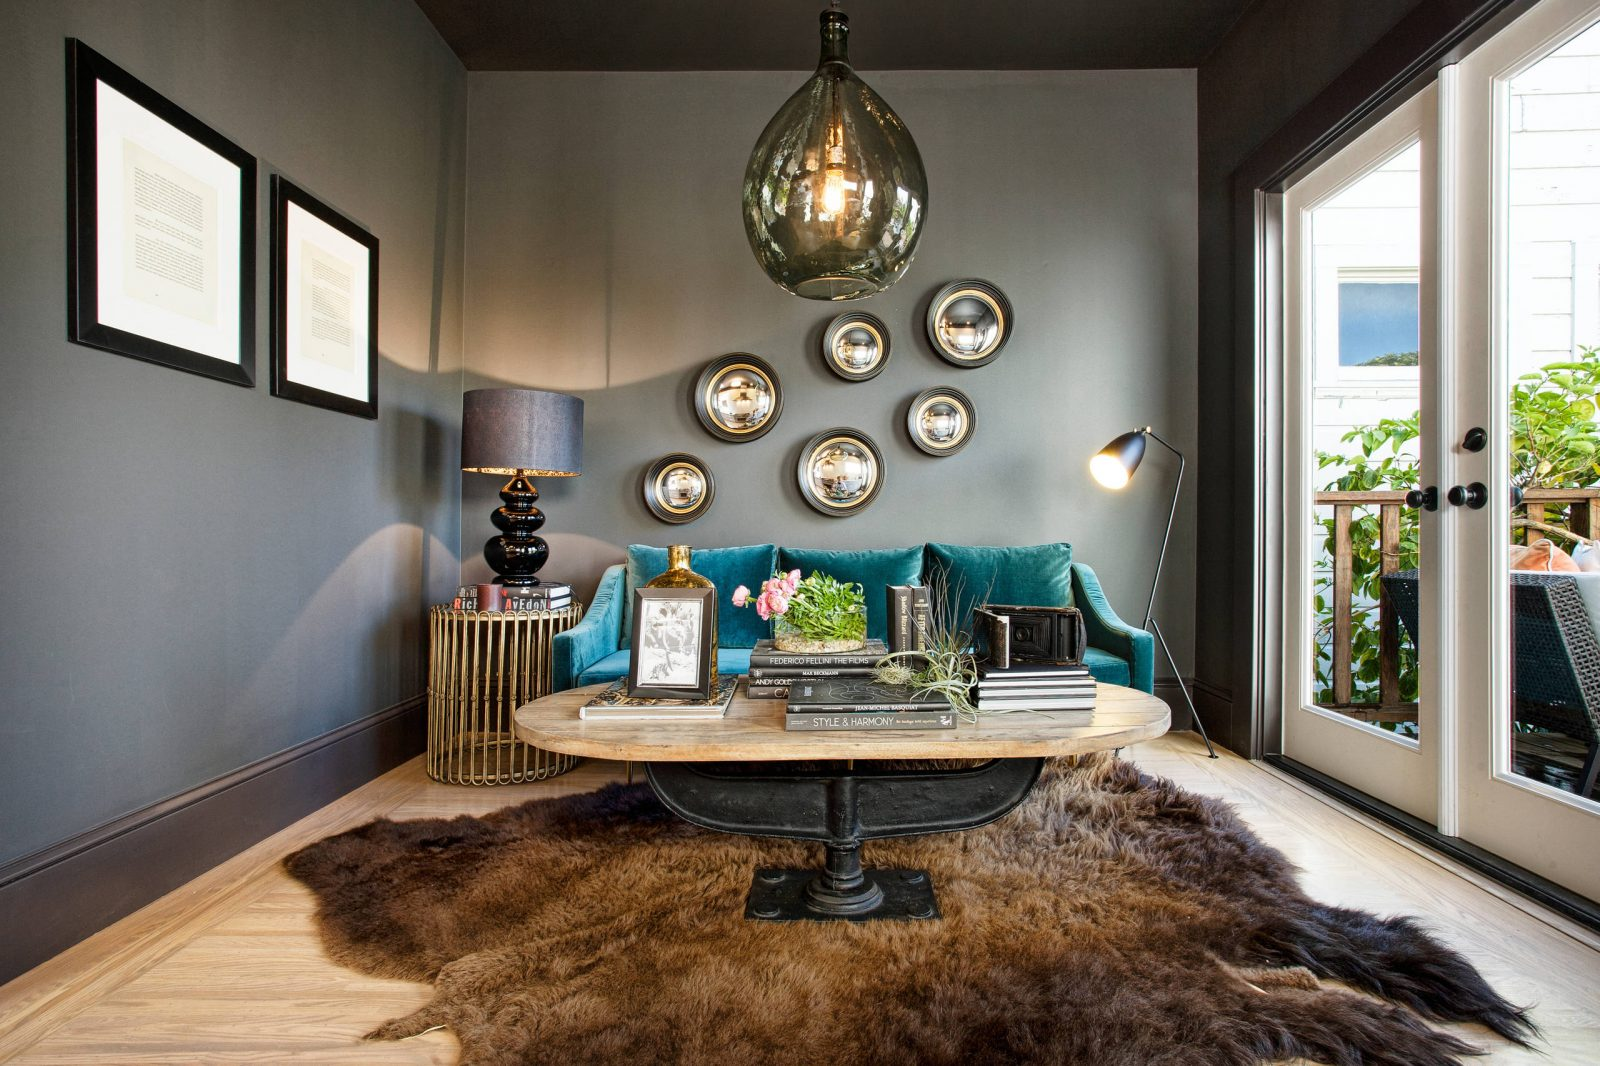 19 Most Interesting Grey And Teal Living Room Ideas To Get Inspired By – JimenezPhoto